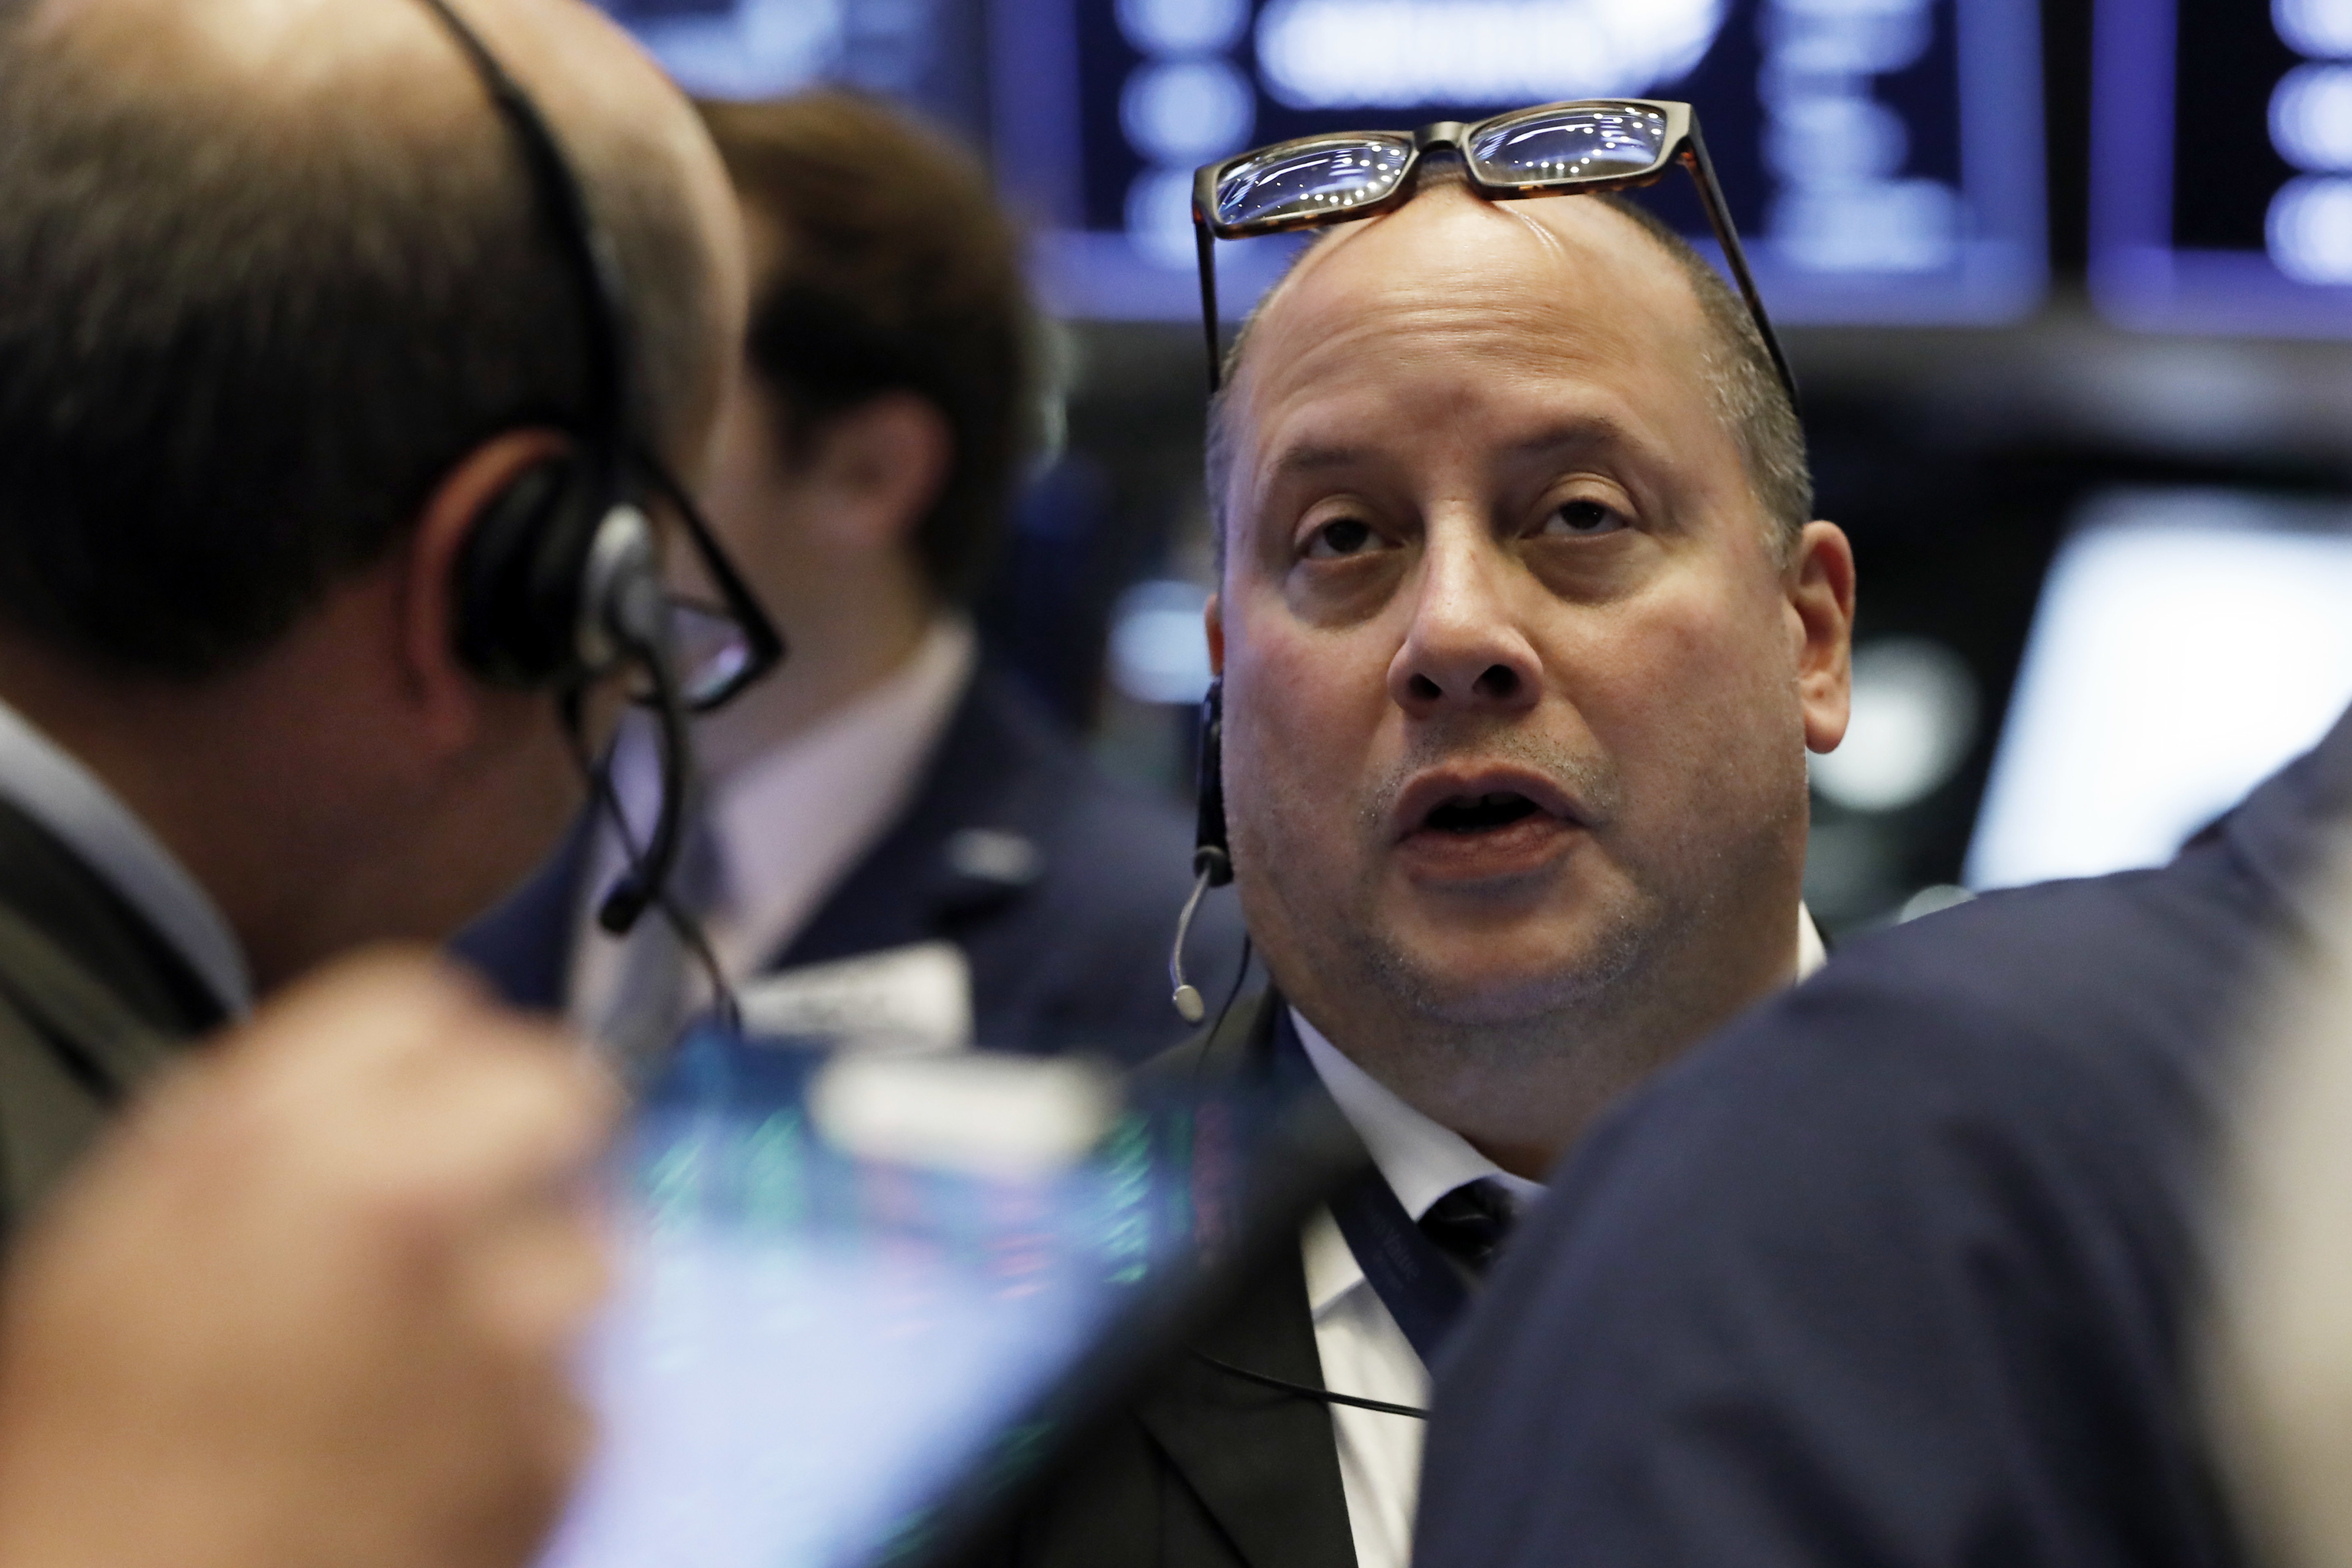 Markets Right Now: US stock indexes end a bumpy week mixed